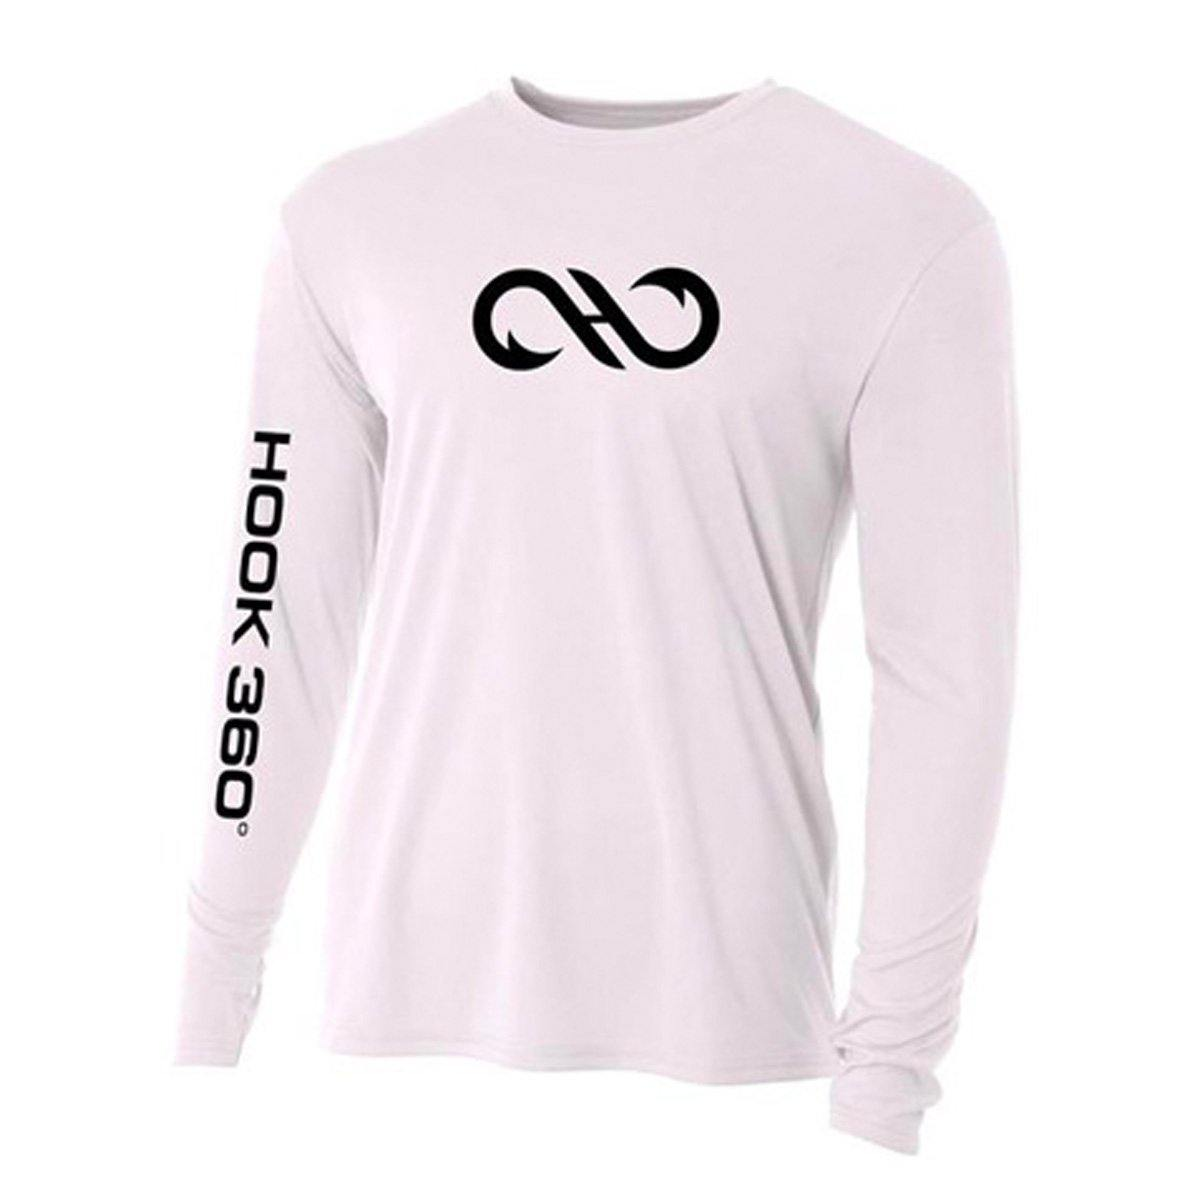 Tournament Performance Shirt (4346366132296)